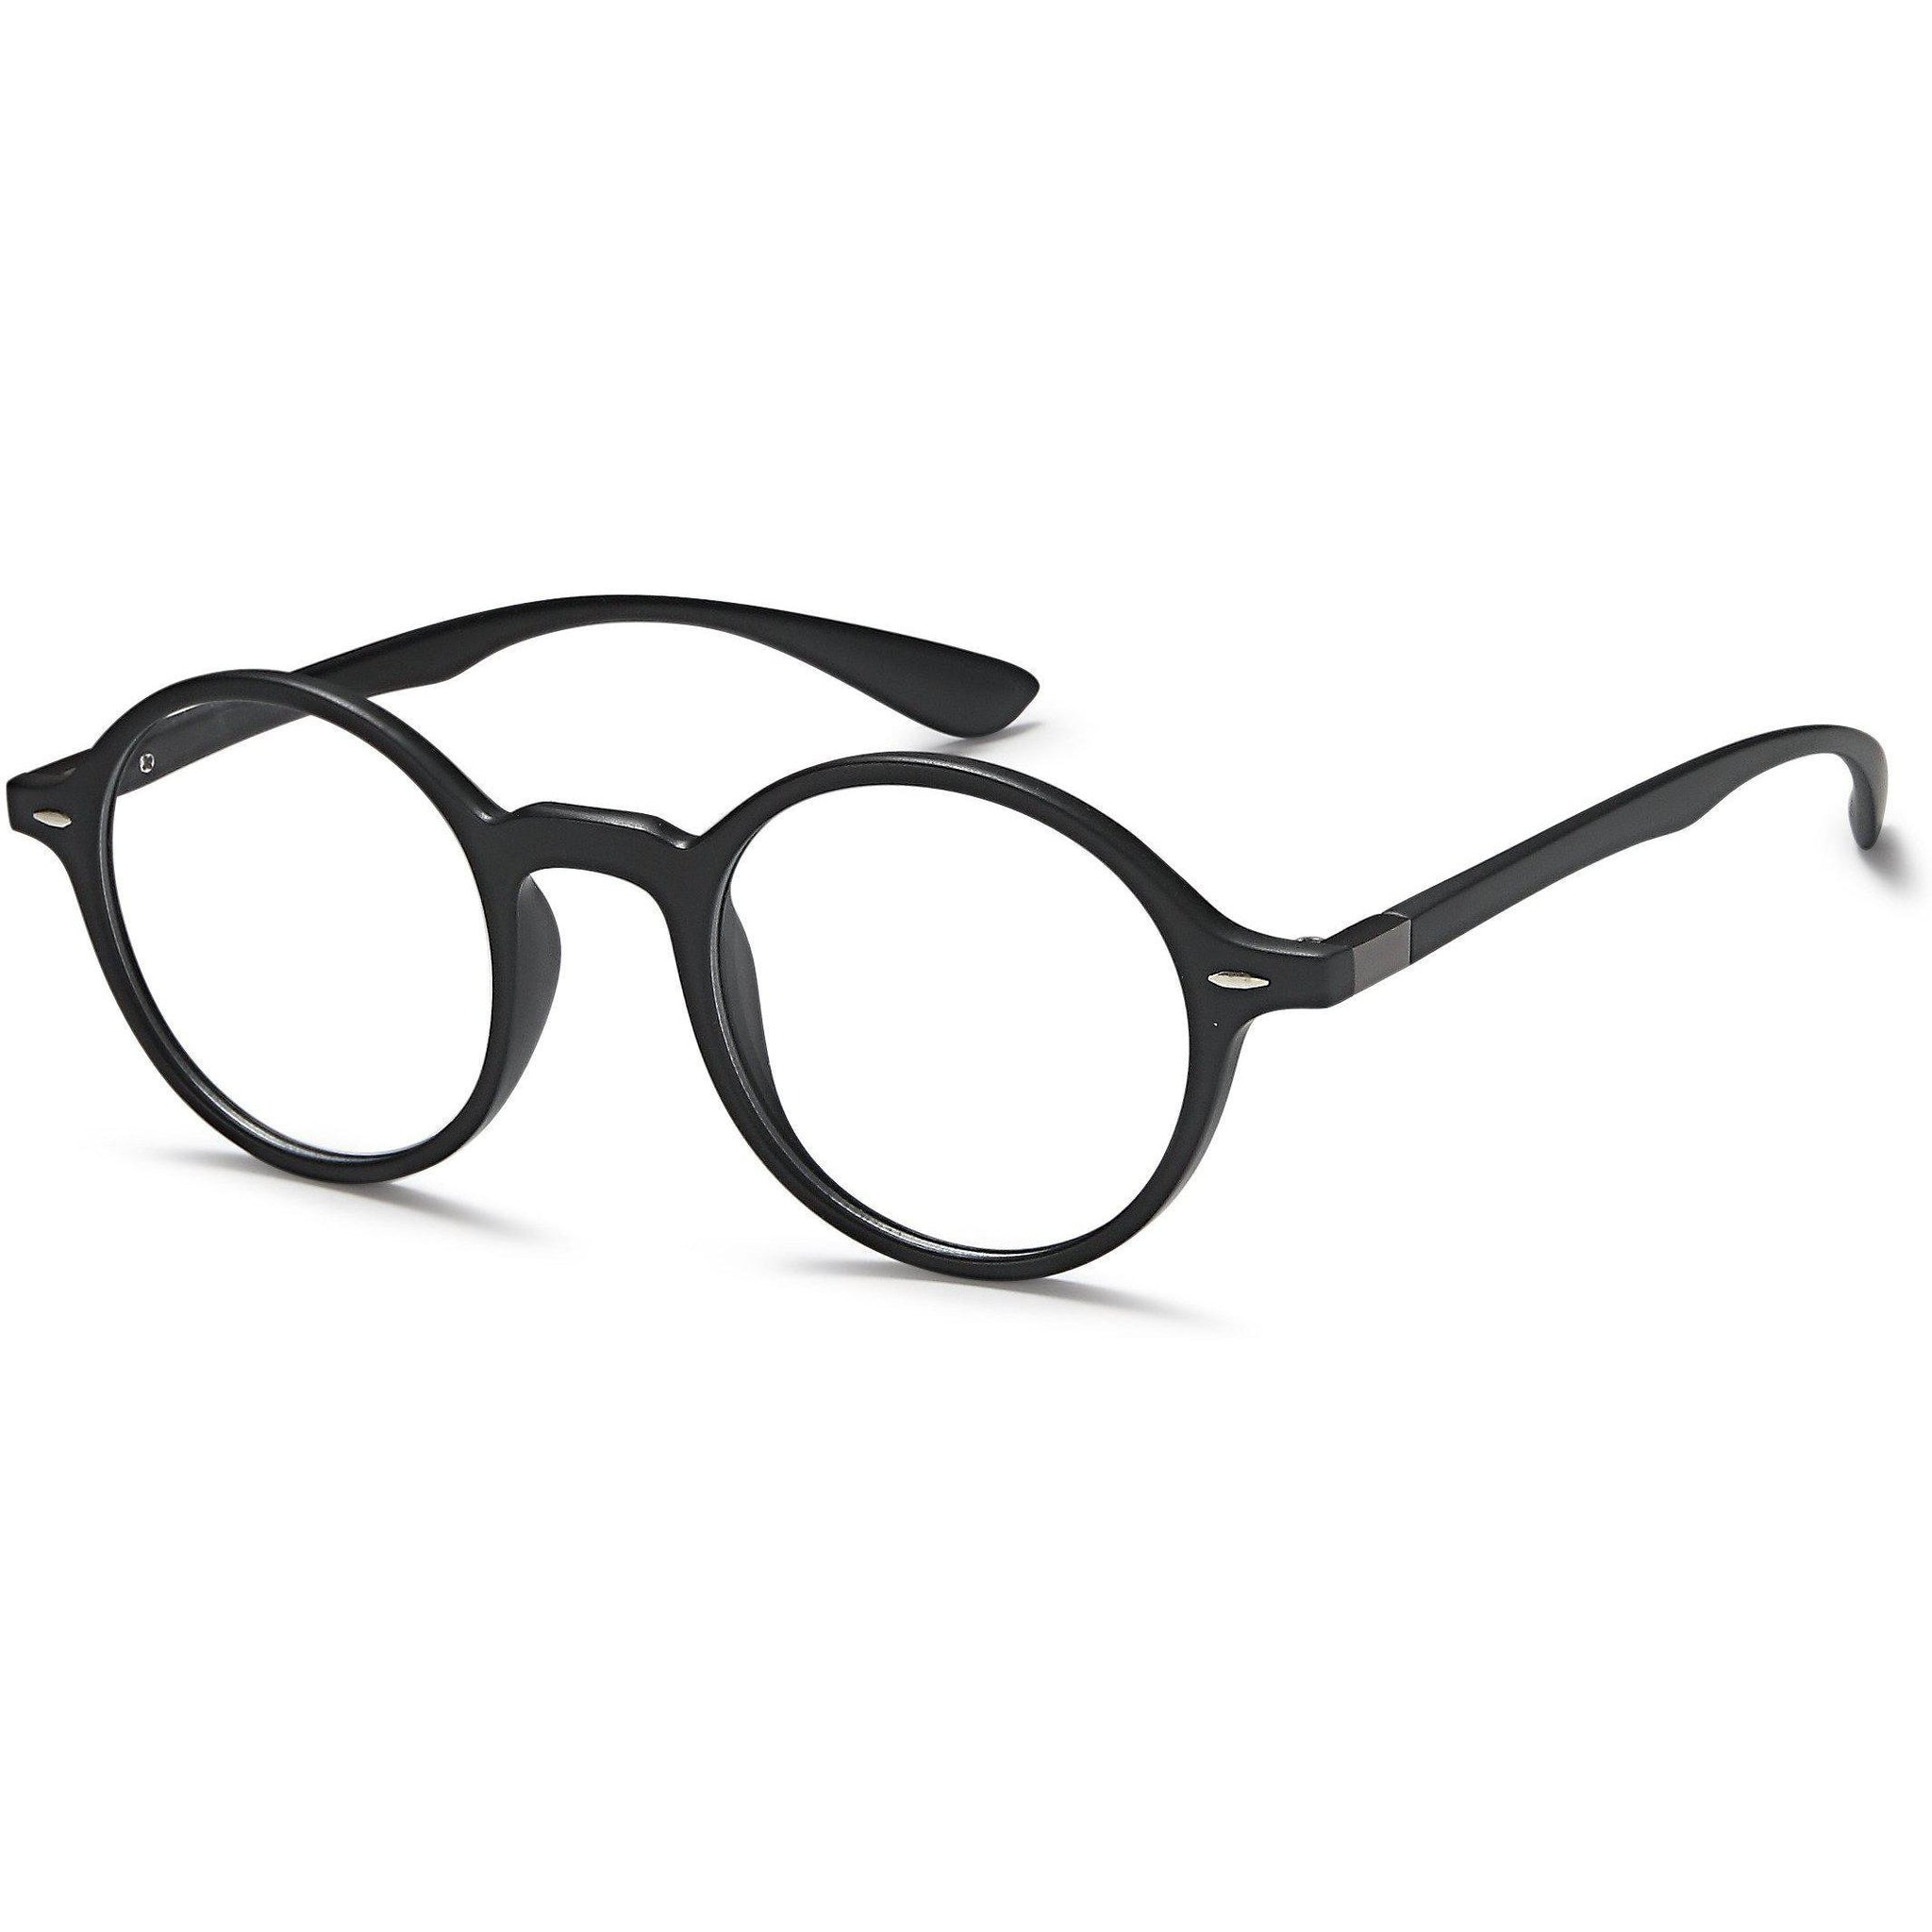 The Icons Prescription Glasses SPENCER Eyeglasses Frame